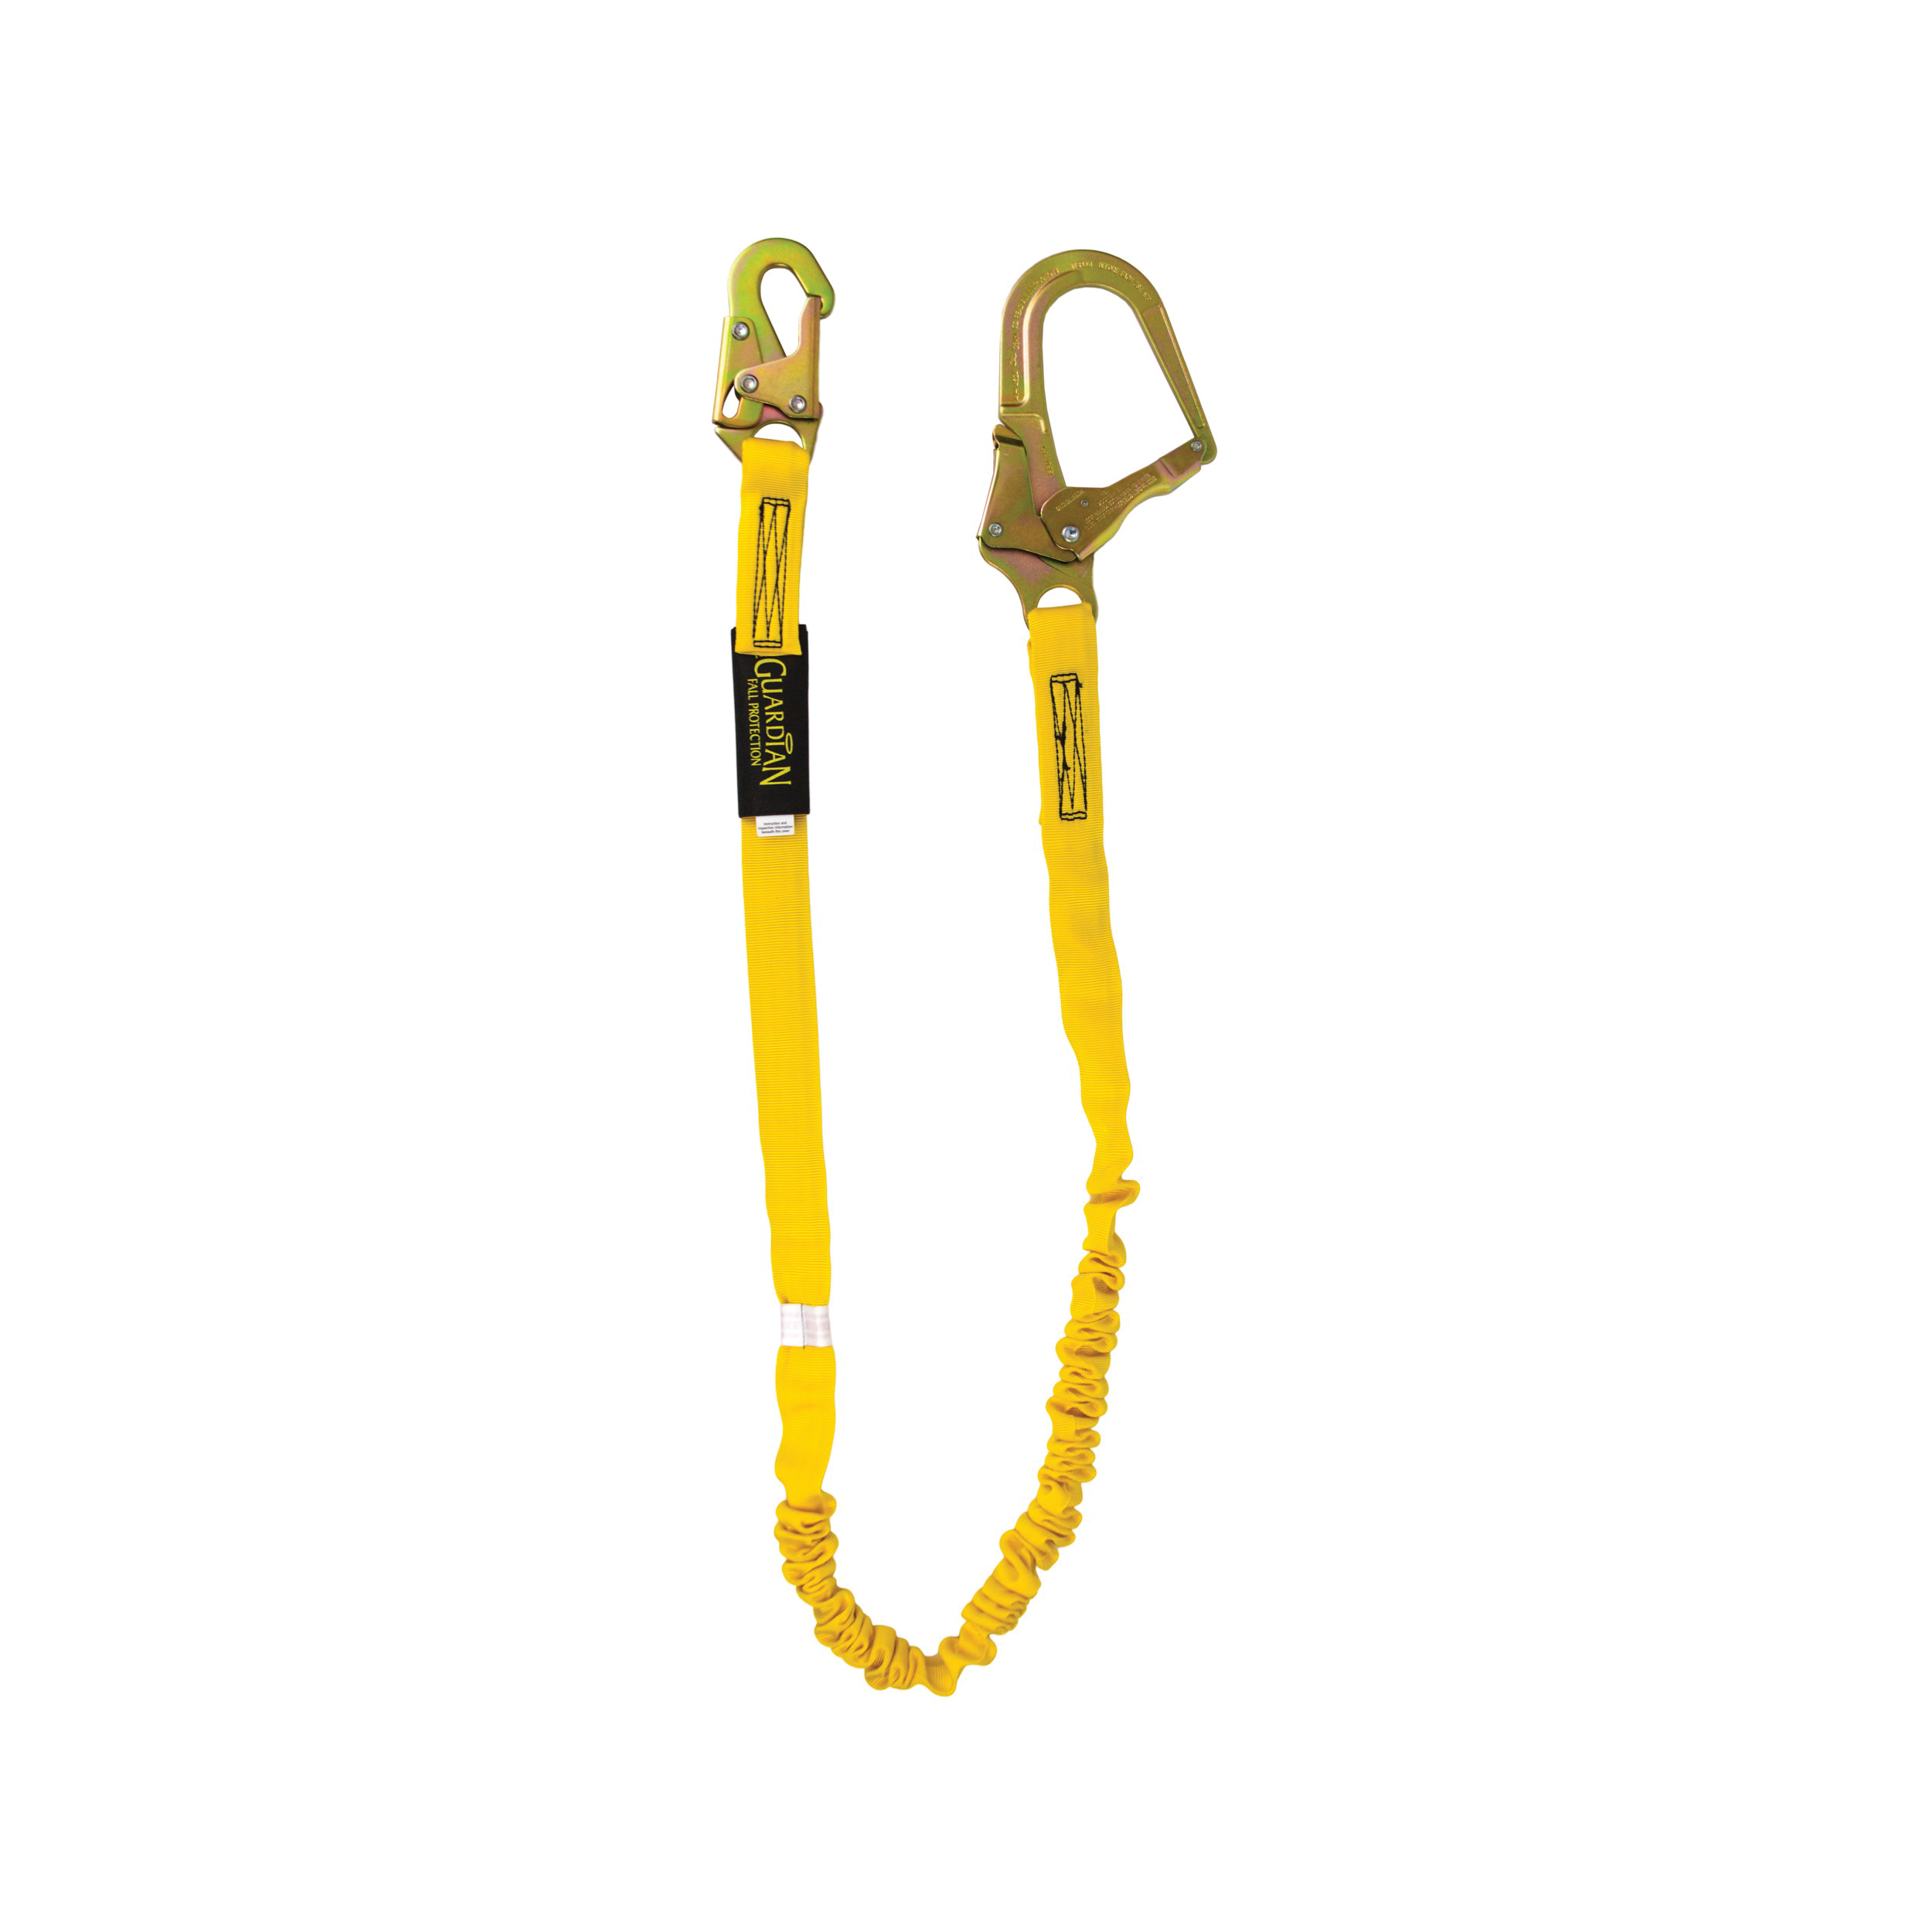 GUARDIAN FALL PROTECTION11201